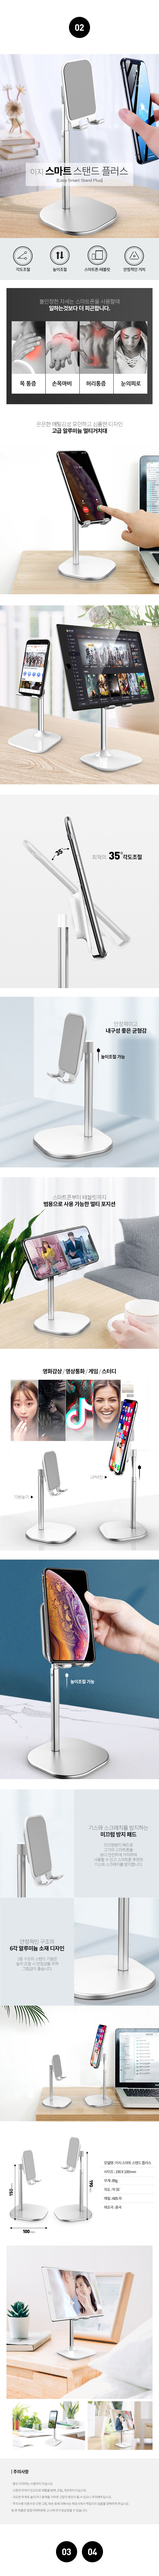 easy_smart_stand_all_fix_02_134031.jpg